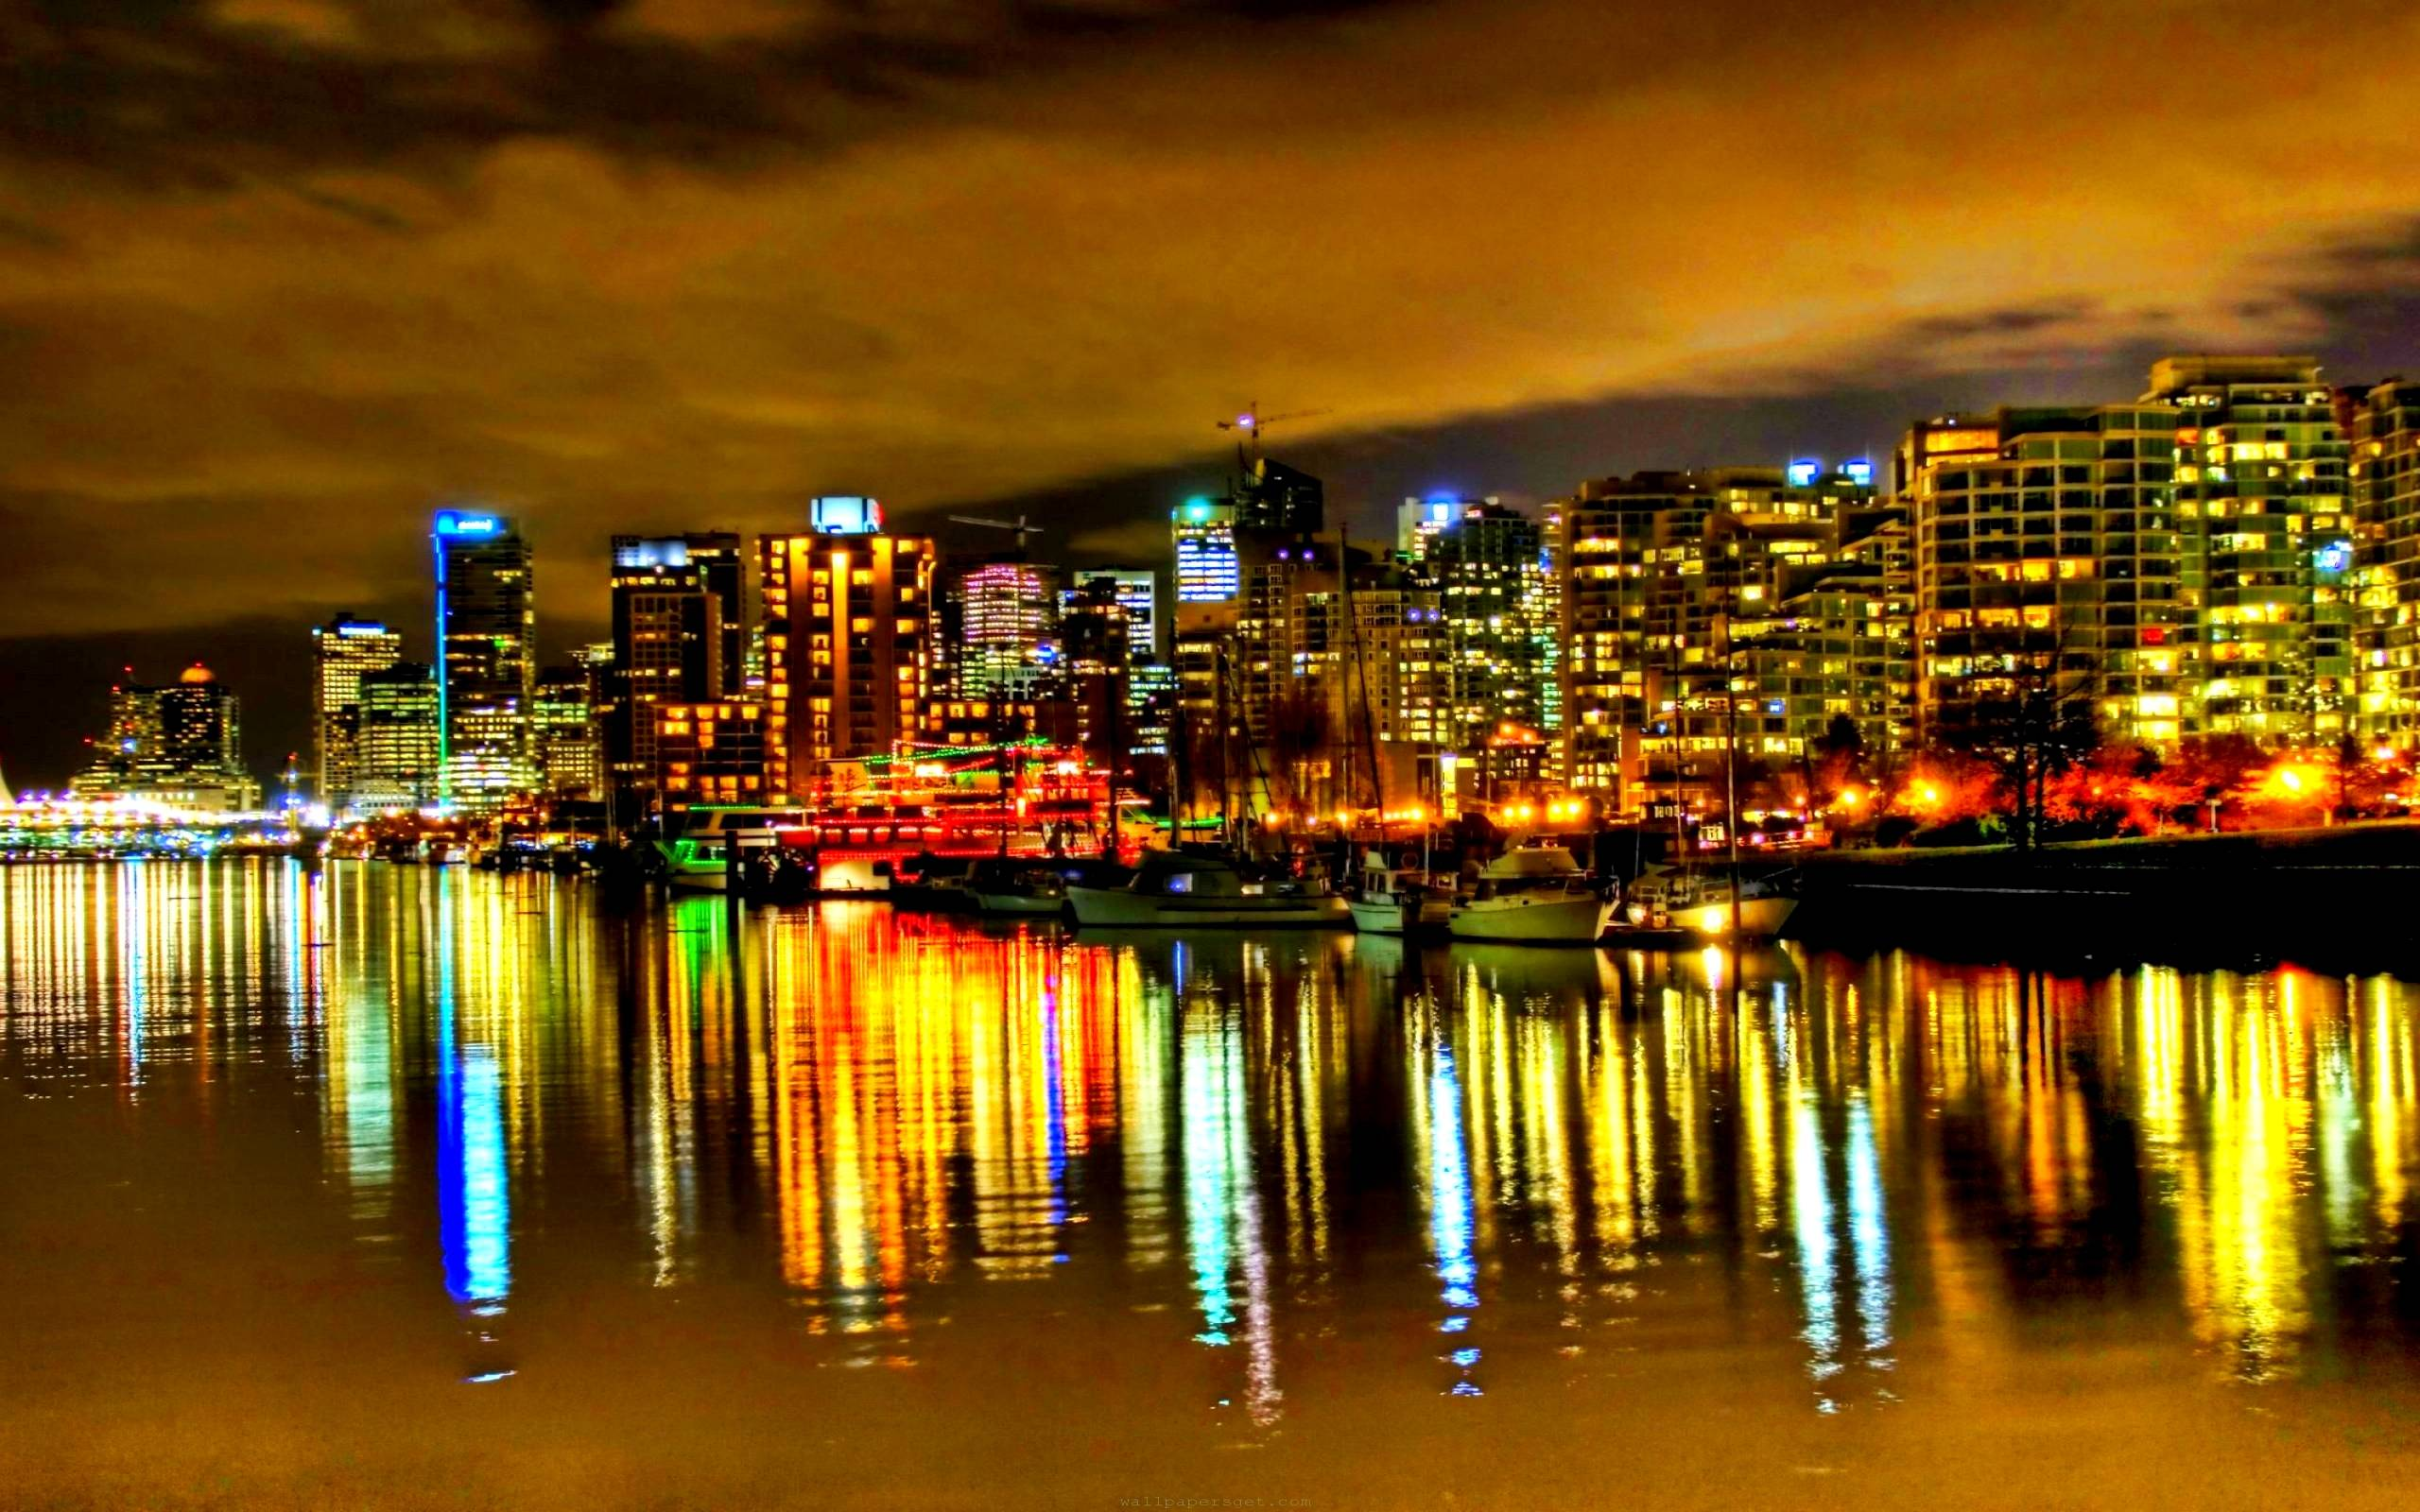 City Lights Backgrounds - Wallpaper Cave